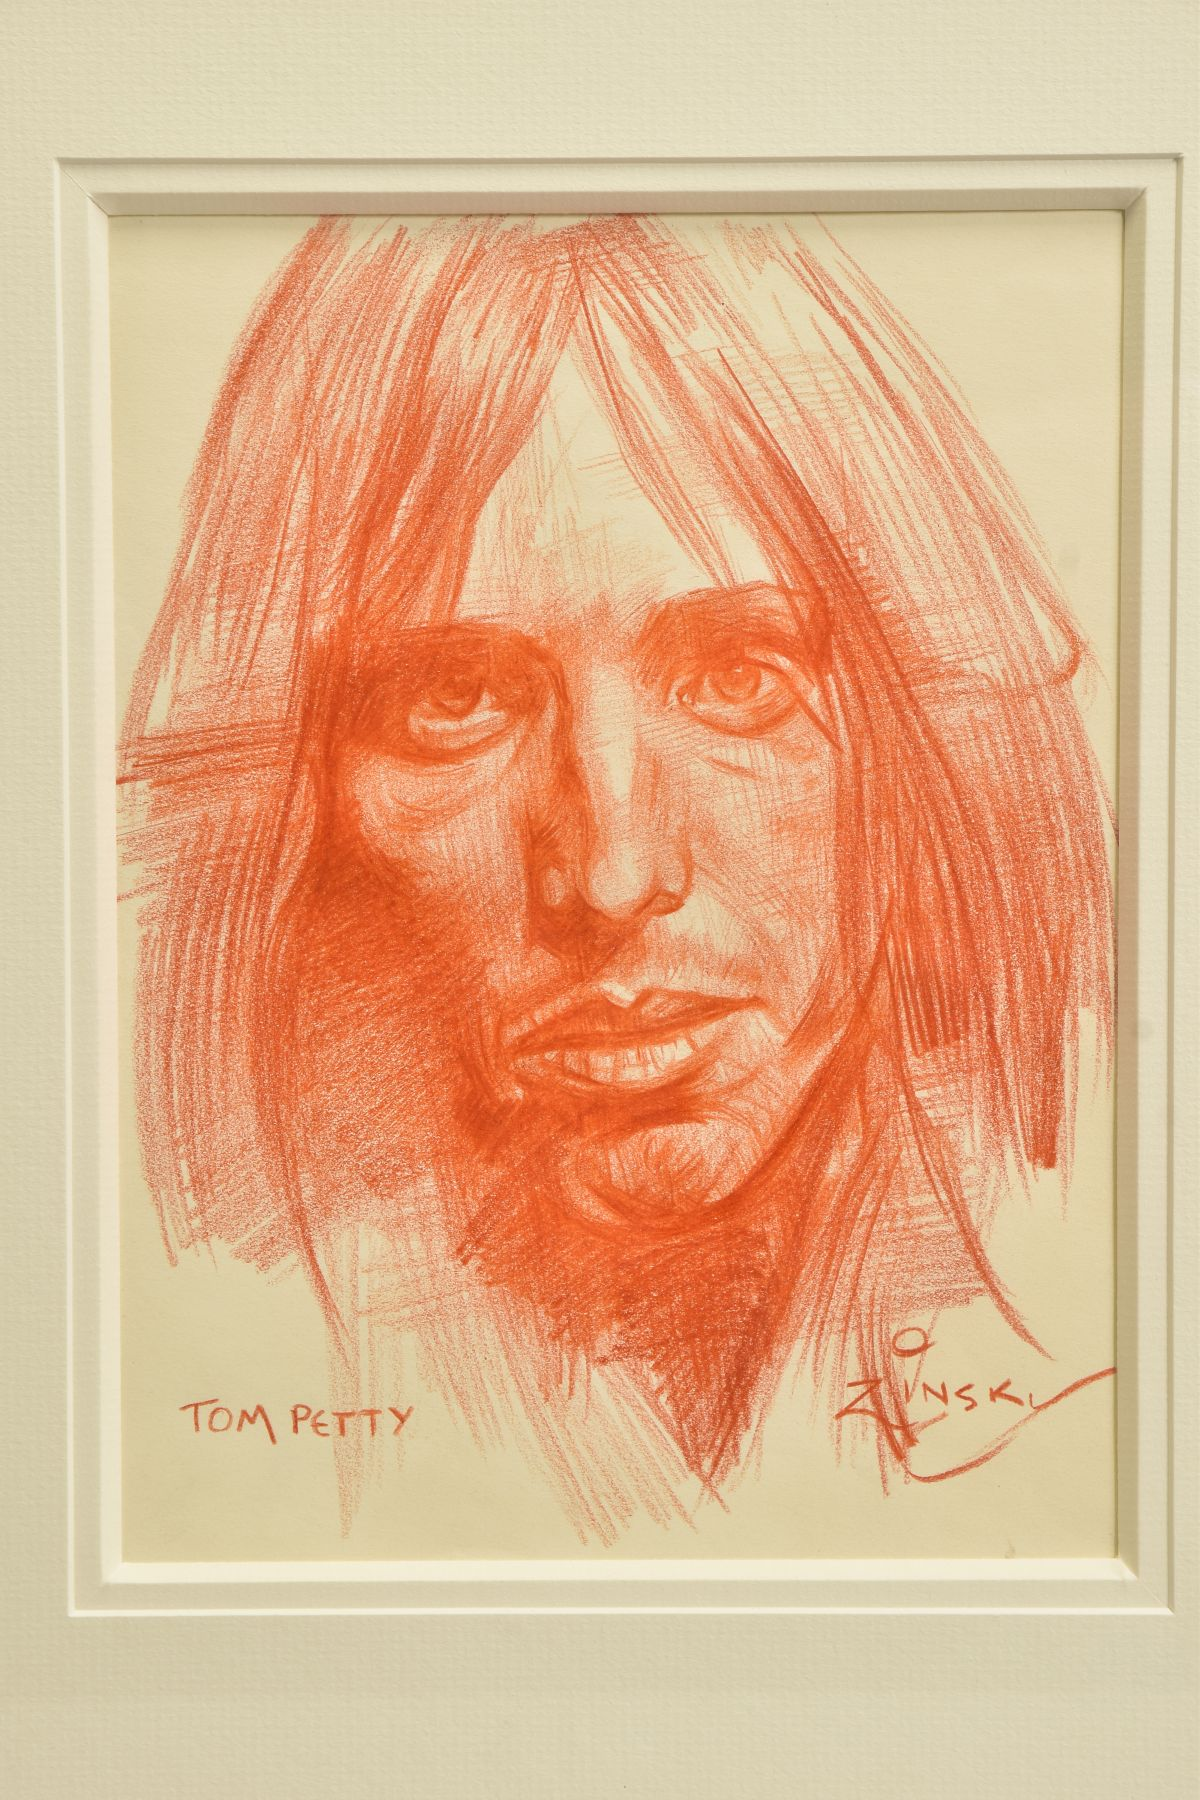 ZINSKY (BRITISH CONTEMPORARY) 'TOM PETTY' a portrait of the American rock star, signed and titled to - Image 2 of 4